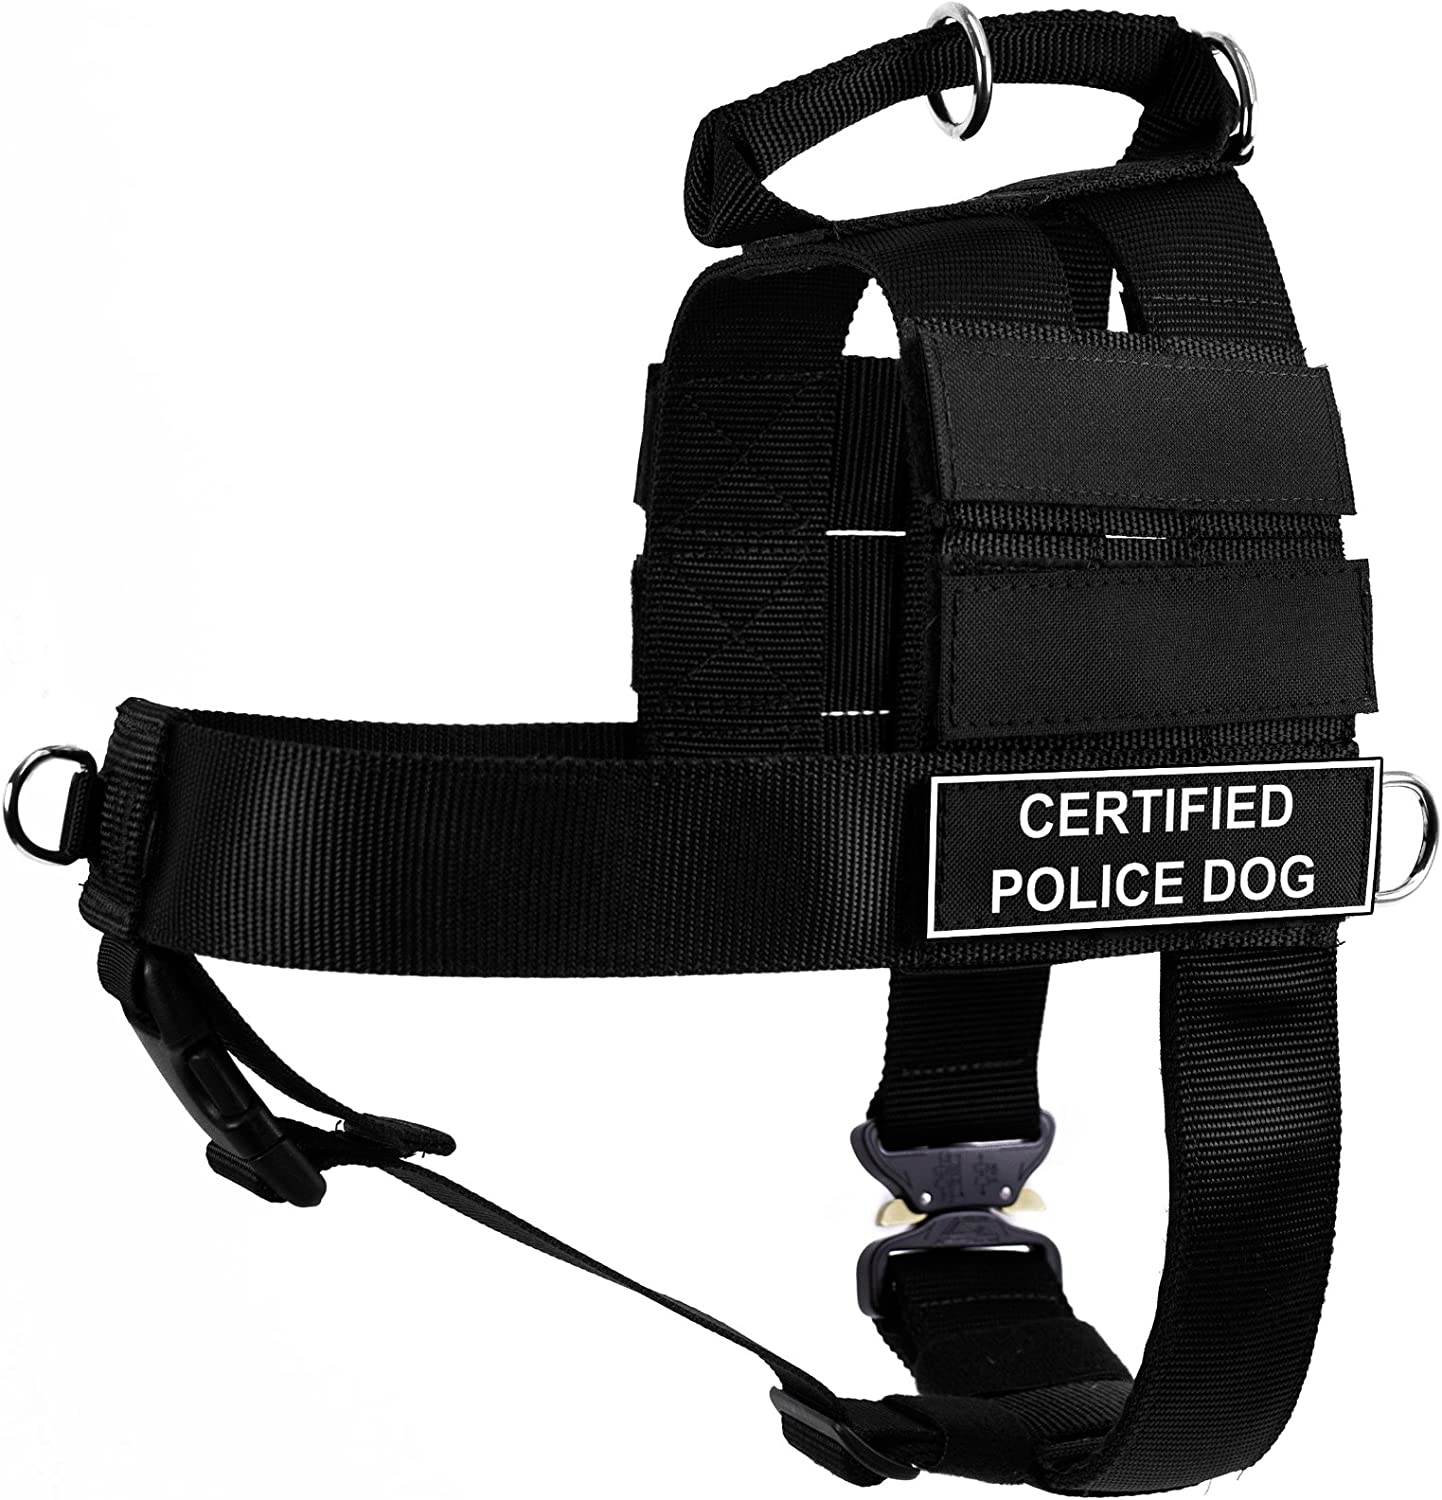 Dean & Tyler DT Cobra Certified Police Dog No Pull Harness, Small, Black